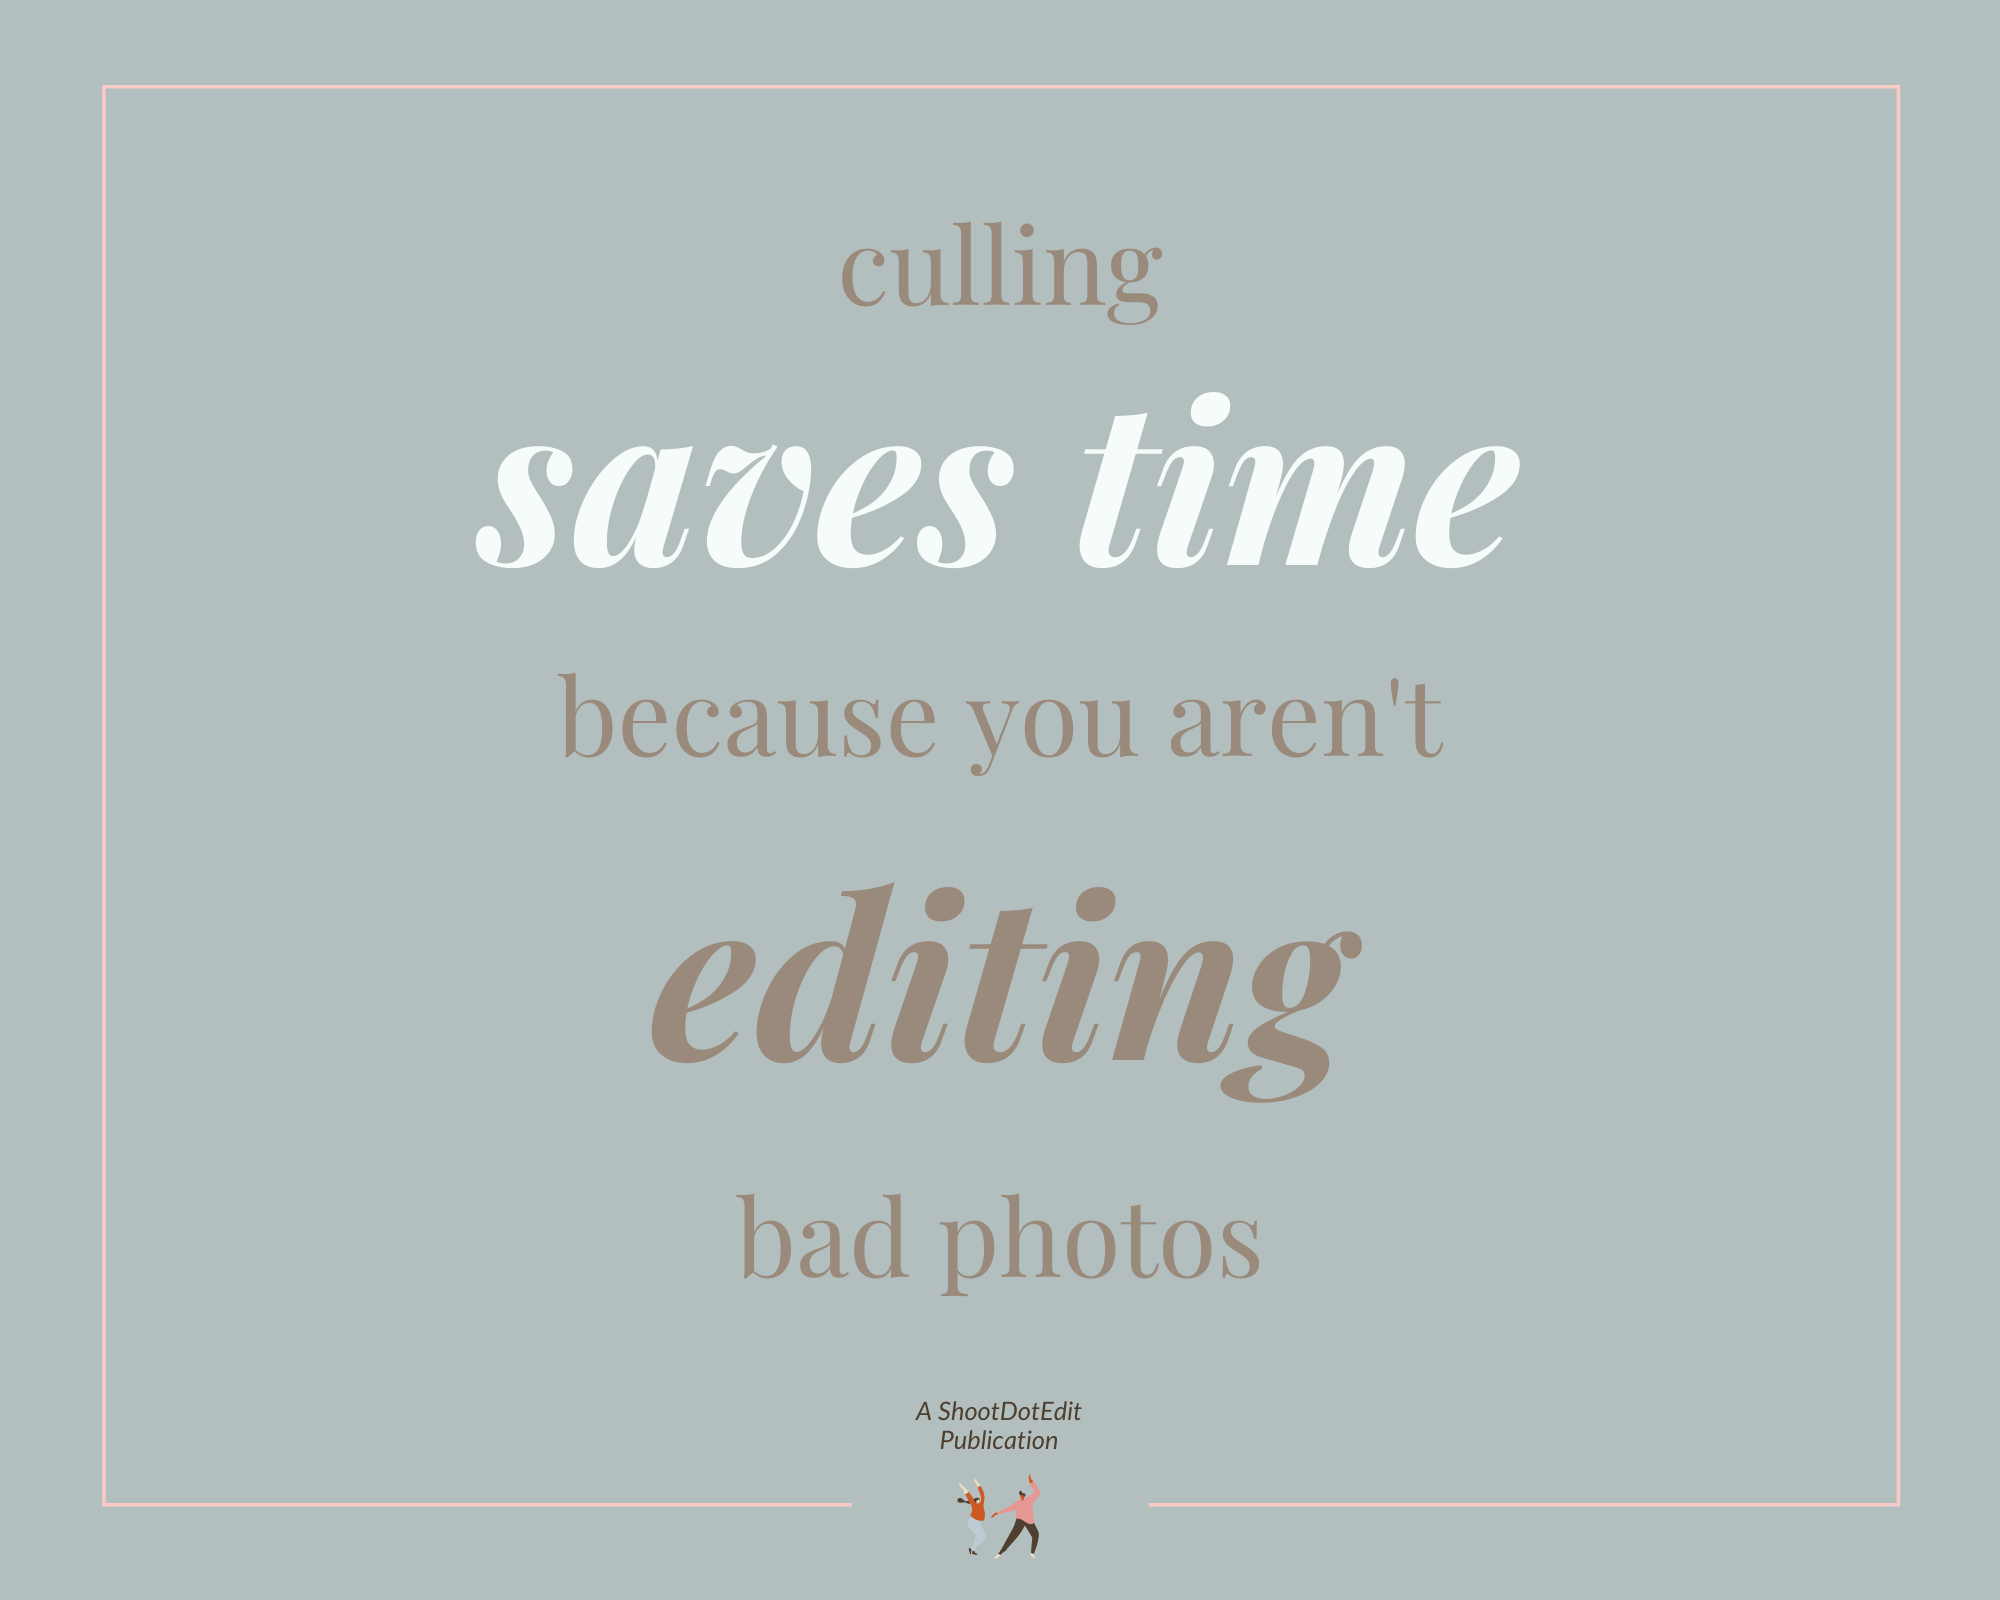 Infographic stating culling saves time because you are not editing bad photos